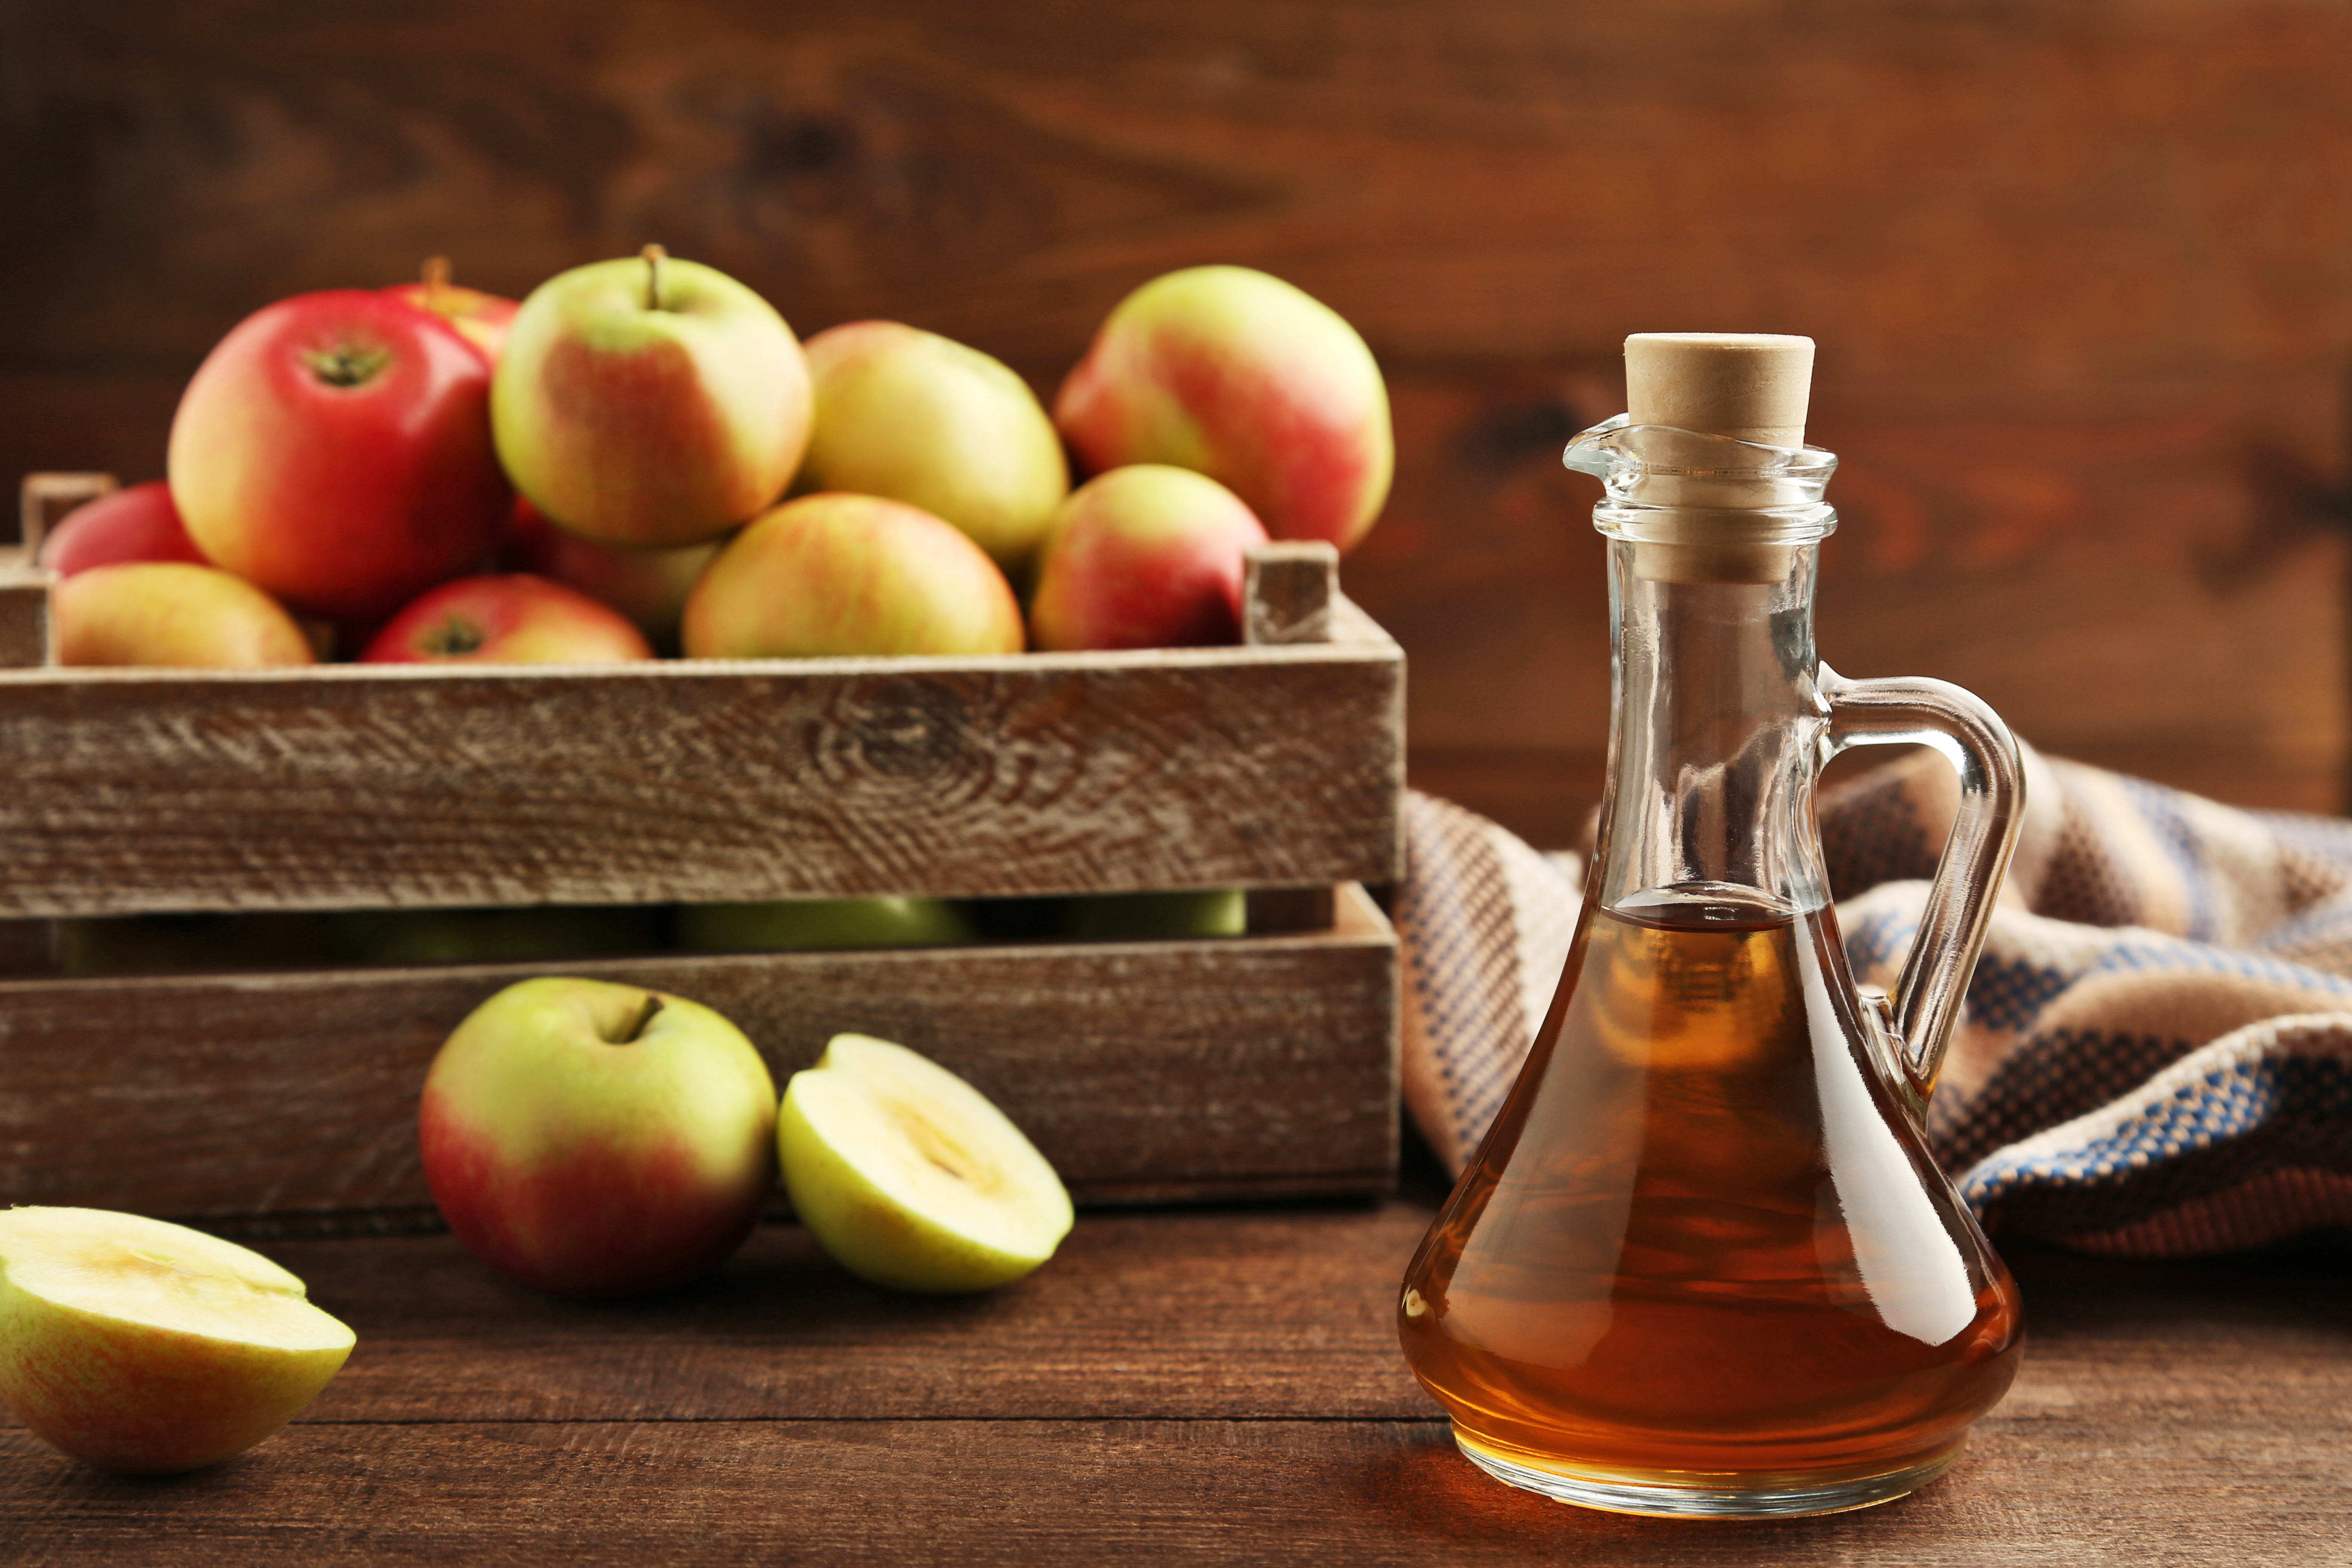 Apple cider vinegar in front of a basket of apples